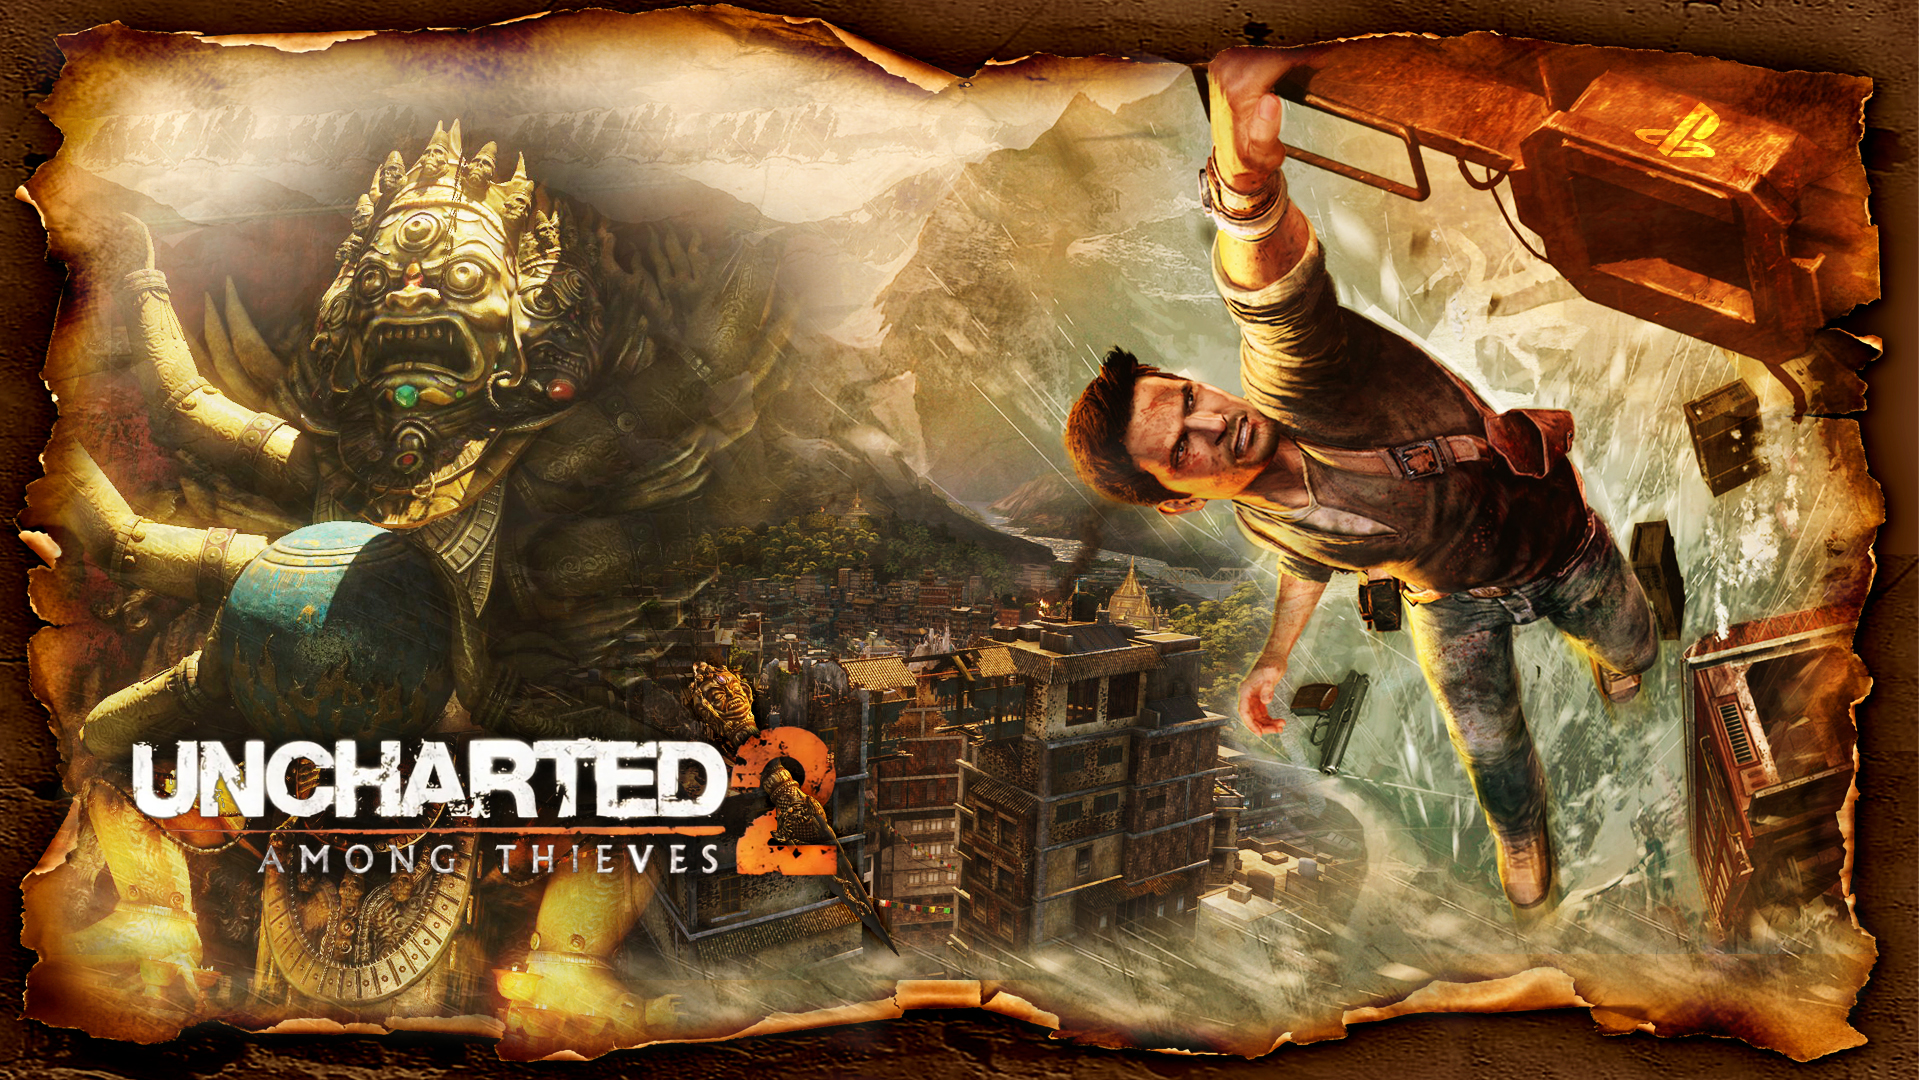 Re Uncharted 2 Among Thieves Stat Cards by MoreBloodW ine   myu2sig 1920x1080